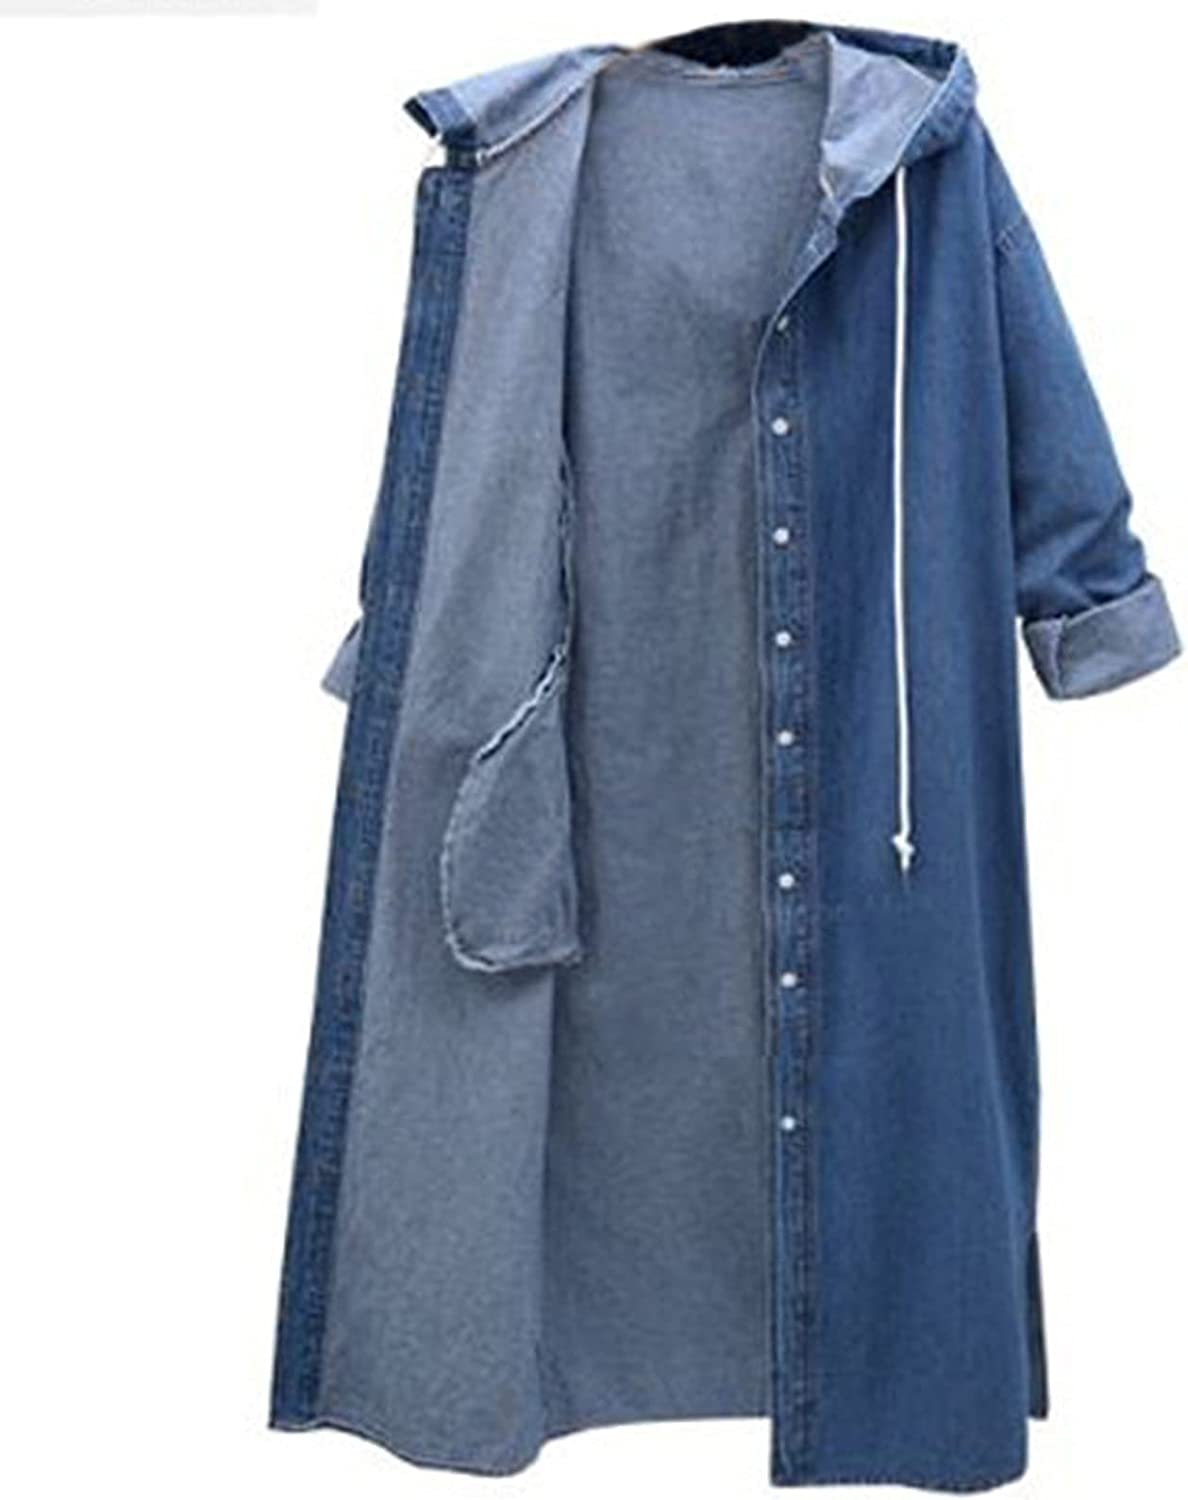 Forng Denim Jacket for Women Drawstring Hoodie Long Windbreaker Coat Fashion Casual Outerwear with Pocket 2021